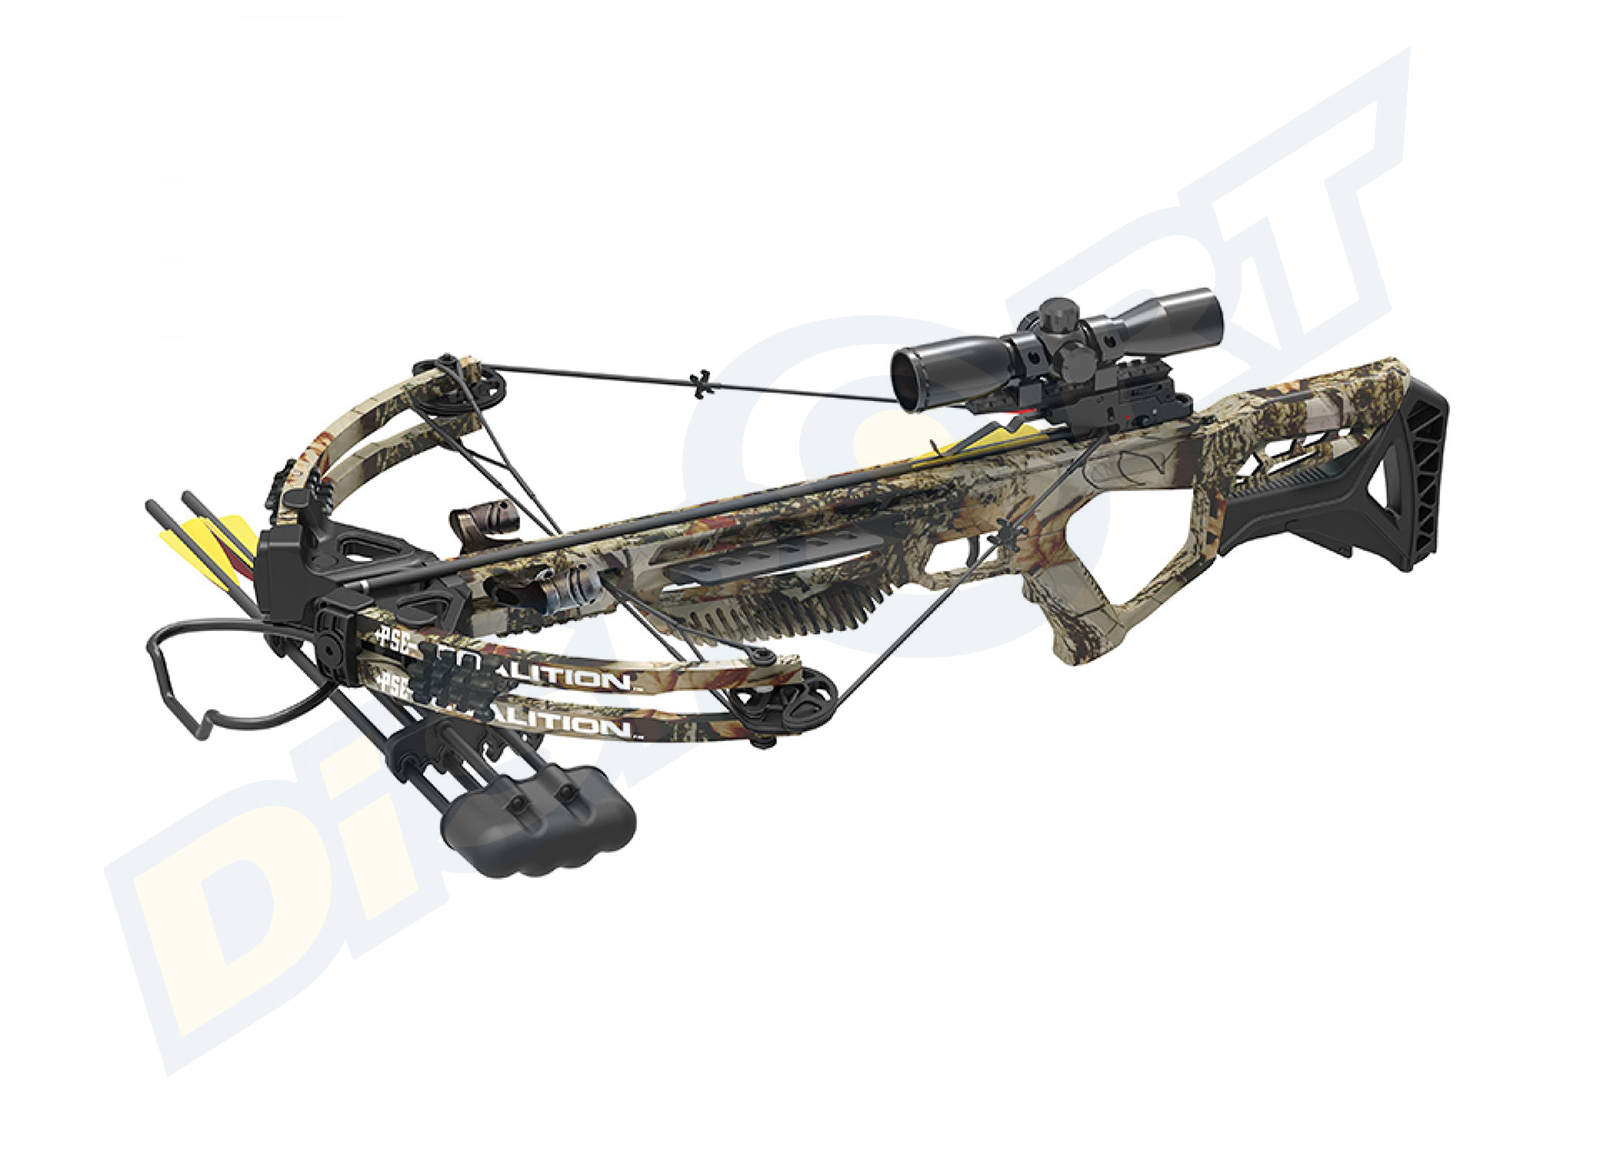 PSE BALESTRA COALITION CAMO 185# 380FPS COMBO KIT SCOPE FRECCE FARETRA E CARICHINO